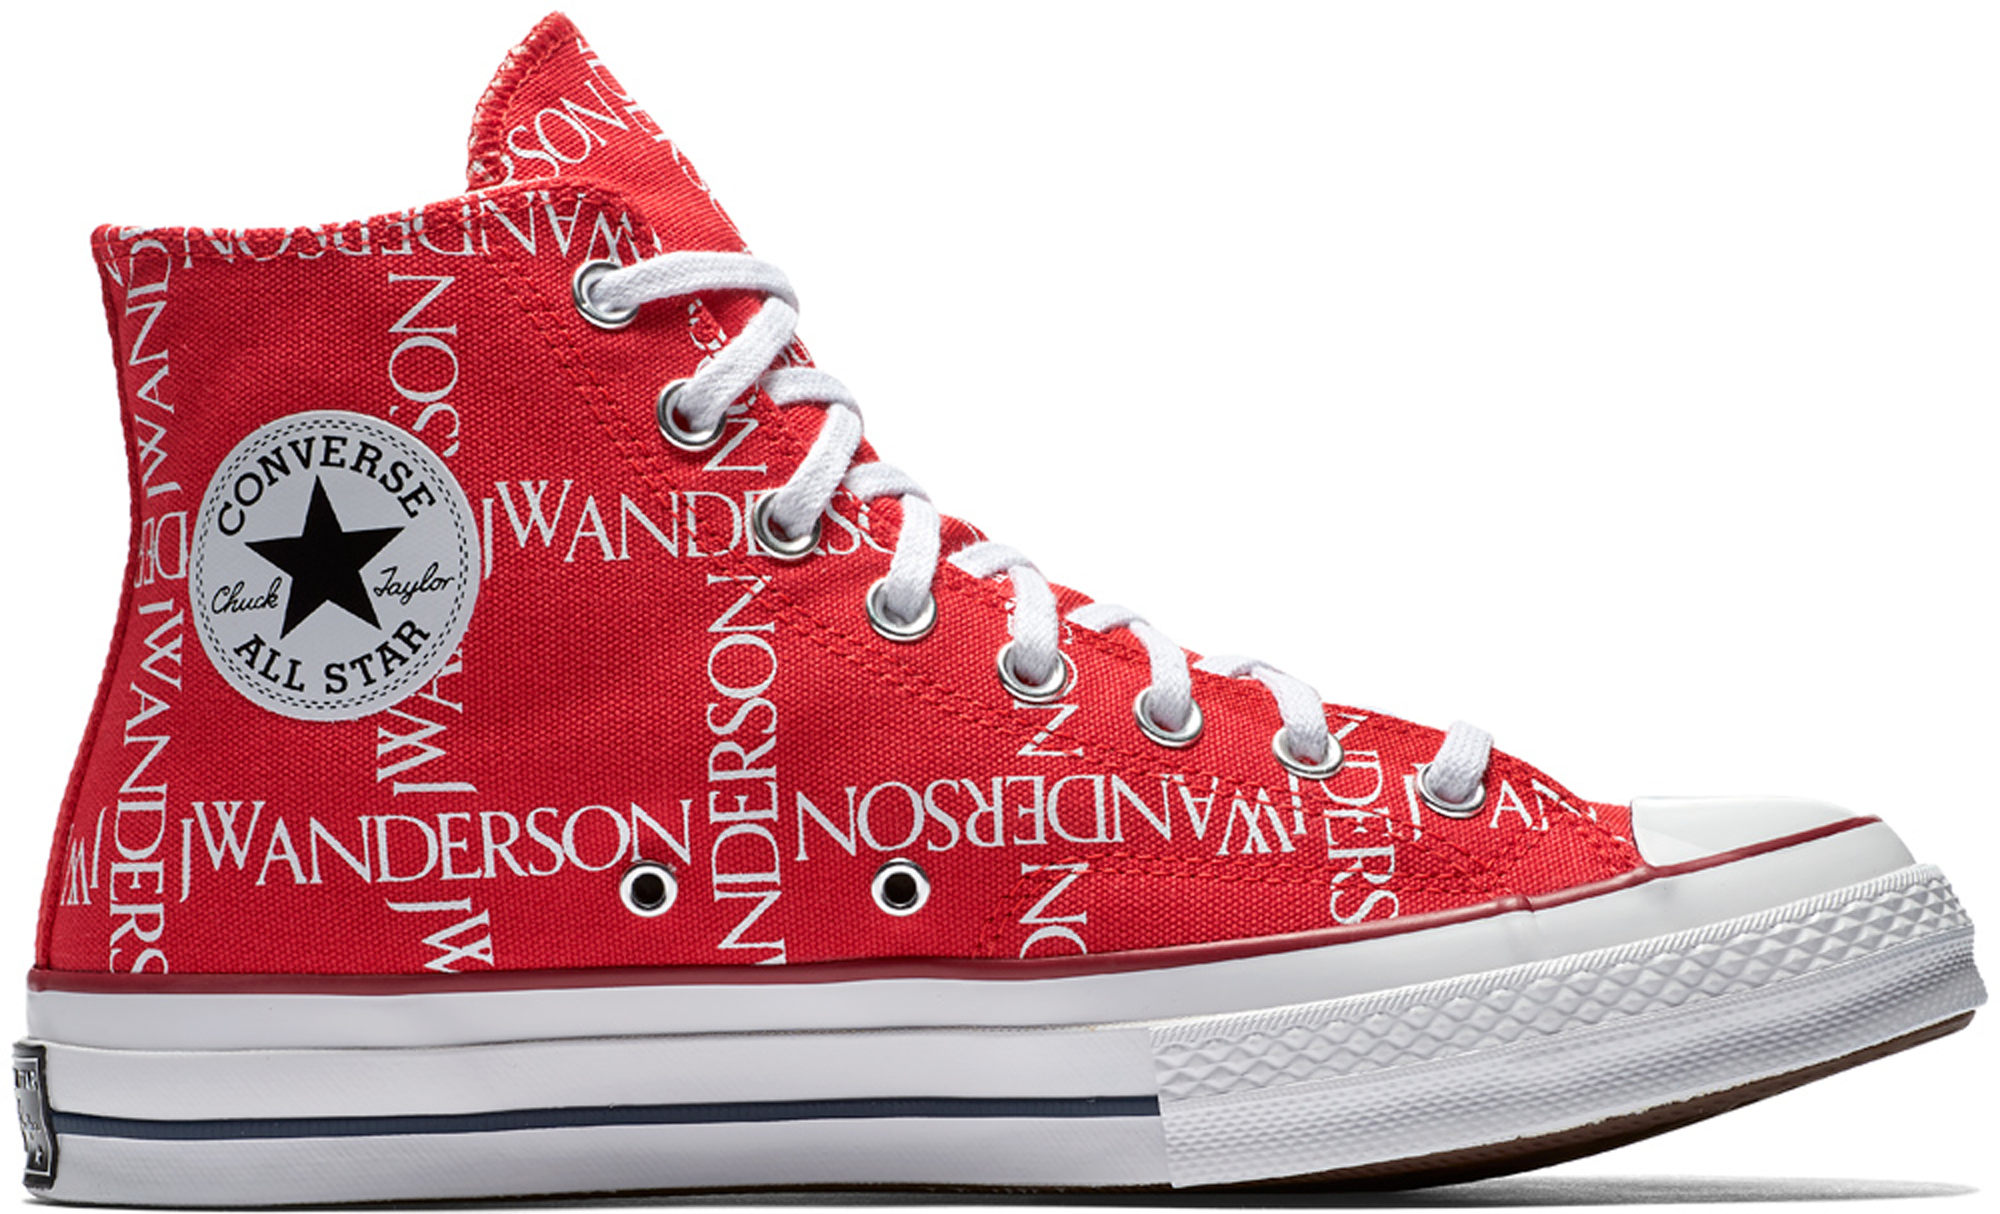 Converse Chuck Taylor All-Star 70s Hi Grid JW Anderson Red